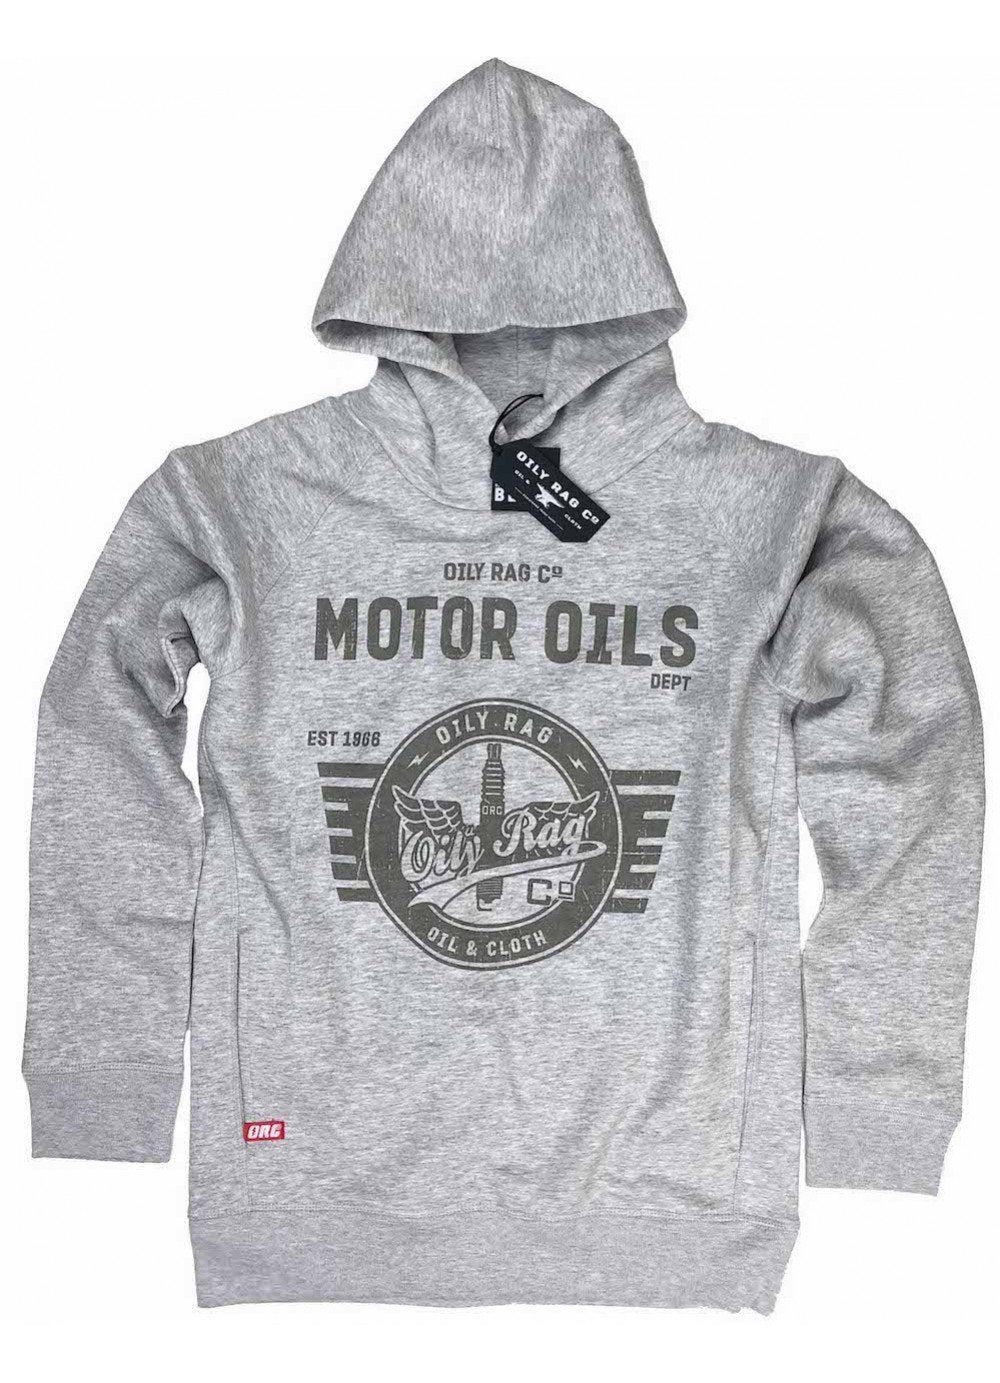 Oily Rag Clothing - Oily Rag Clothing, der Unisexmotoröle schwarzes Etikett Hoodie - Hoodies | Sweatshirts | Windpfropfen - Salt Flats Clothing